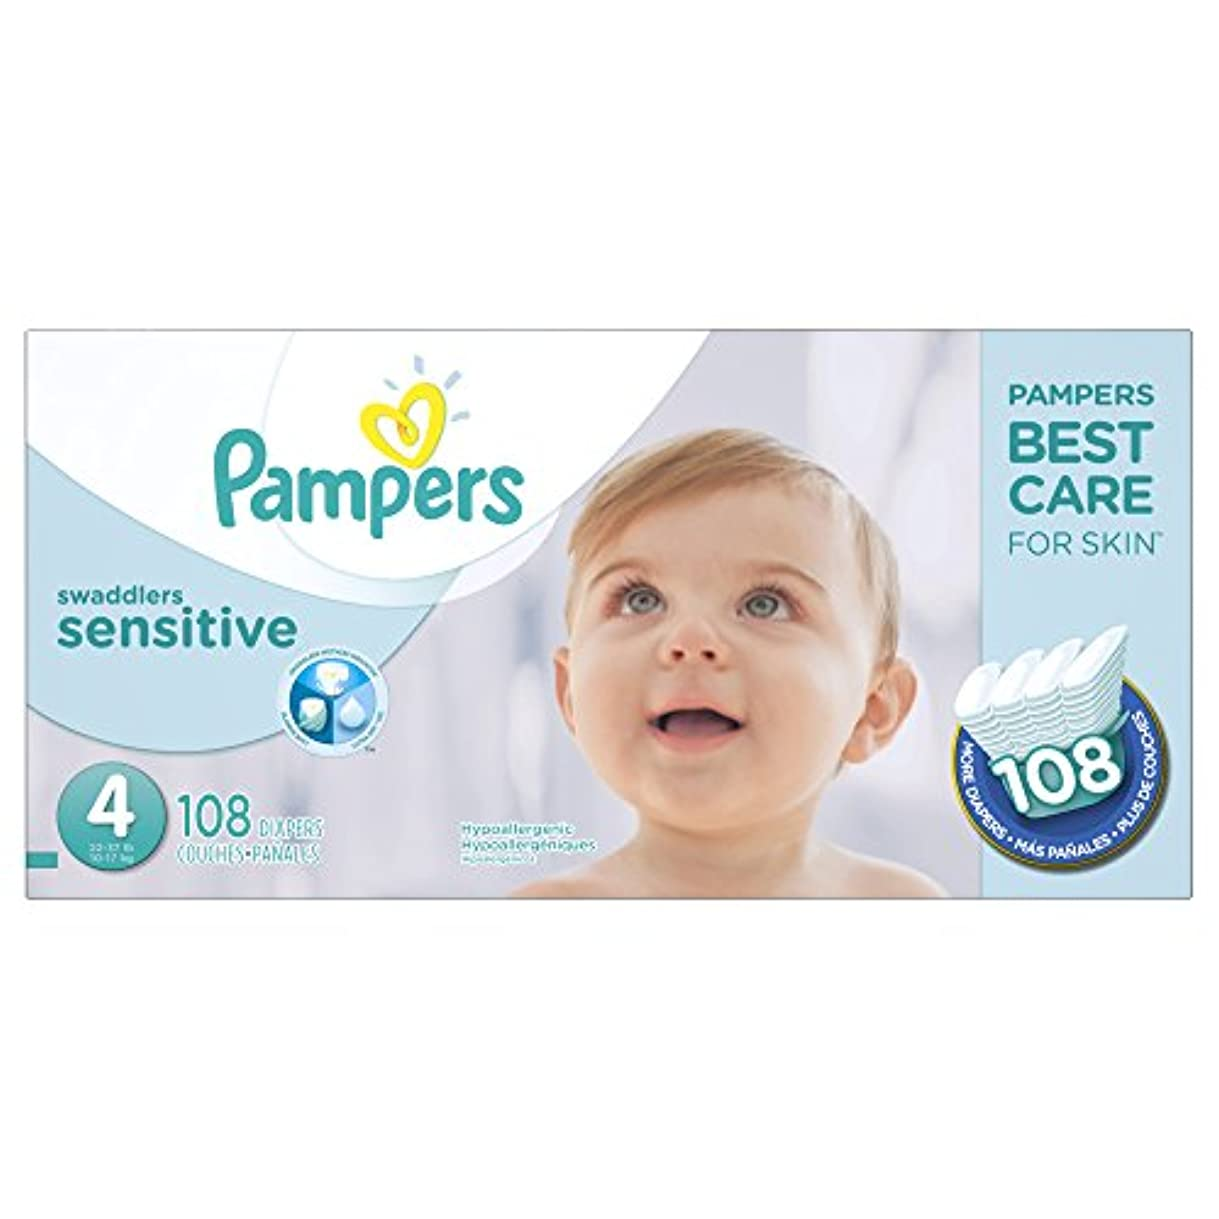 Pampers Swaddlers Sensitive Diapers Size 4 108 Count by Pampers